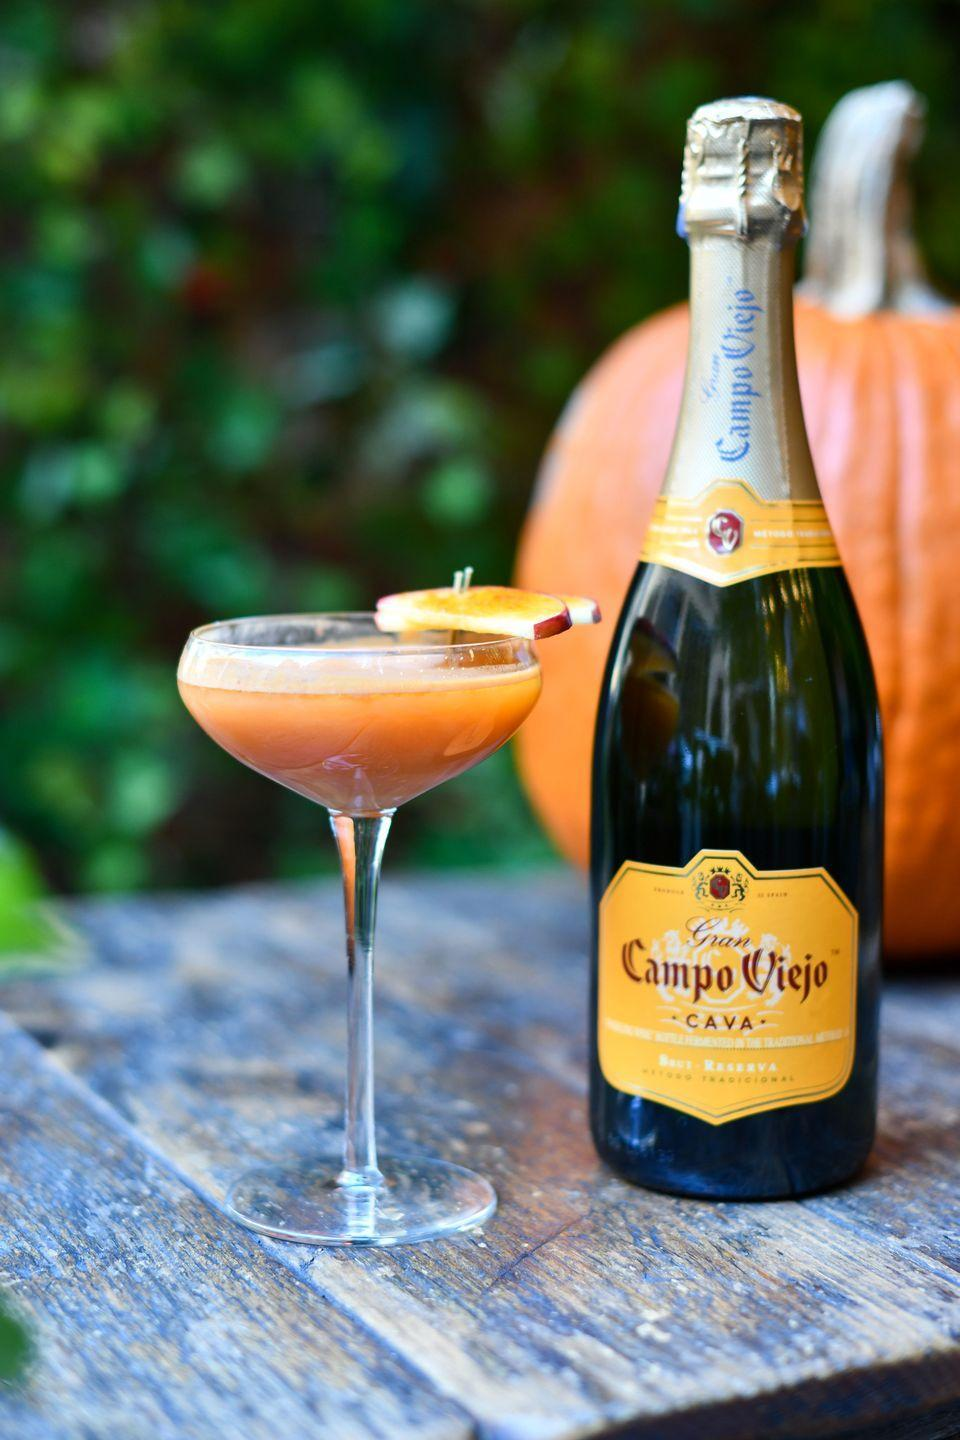 <p><strong>Ingredients</strong></p><p>1.5 oz dark rum<br>1 oz pumpkin spice syrup<br>.5 oz fresh lime juice<br>2 oz Campo Viejo Cava</p><p><strong>Instructions</strong></p><p>Mix all ingredients besides cava in shaker, shake and strain into a martini glass. Top with cava and garnish.</p>